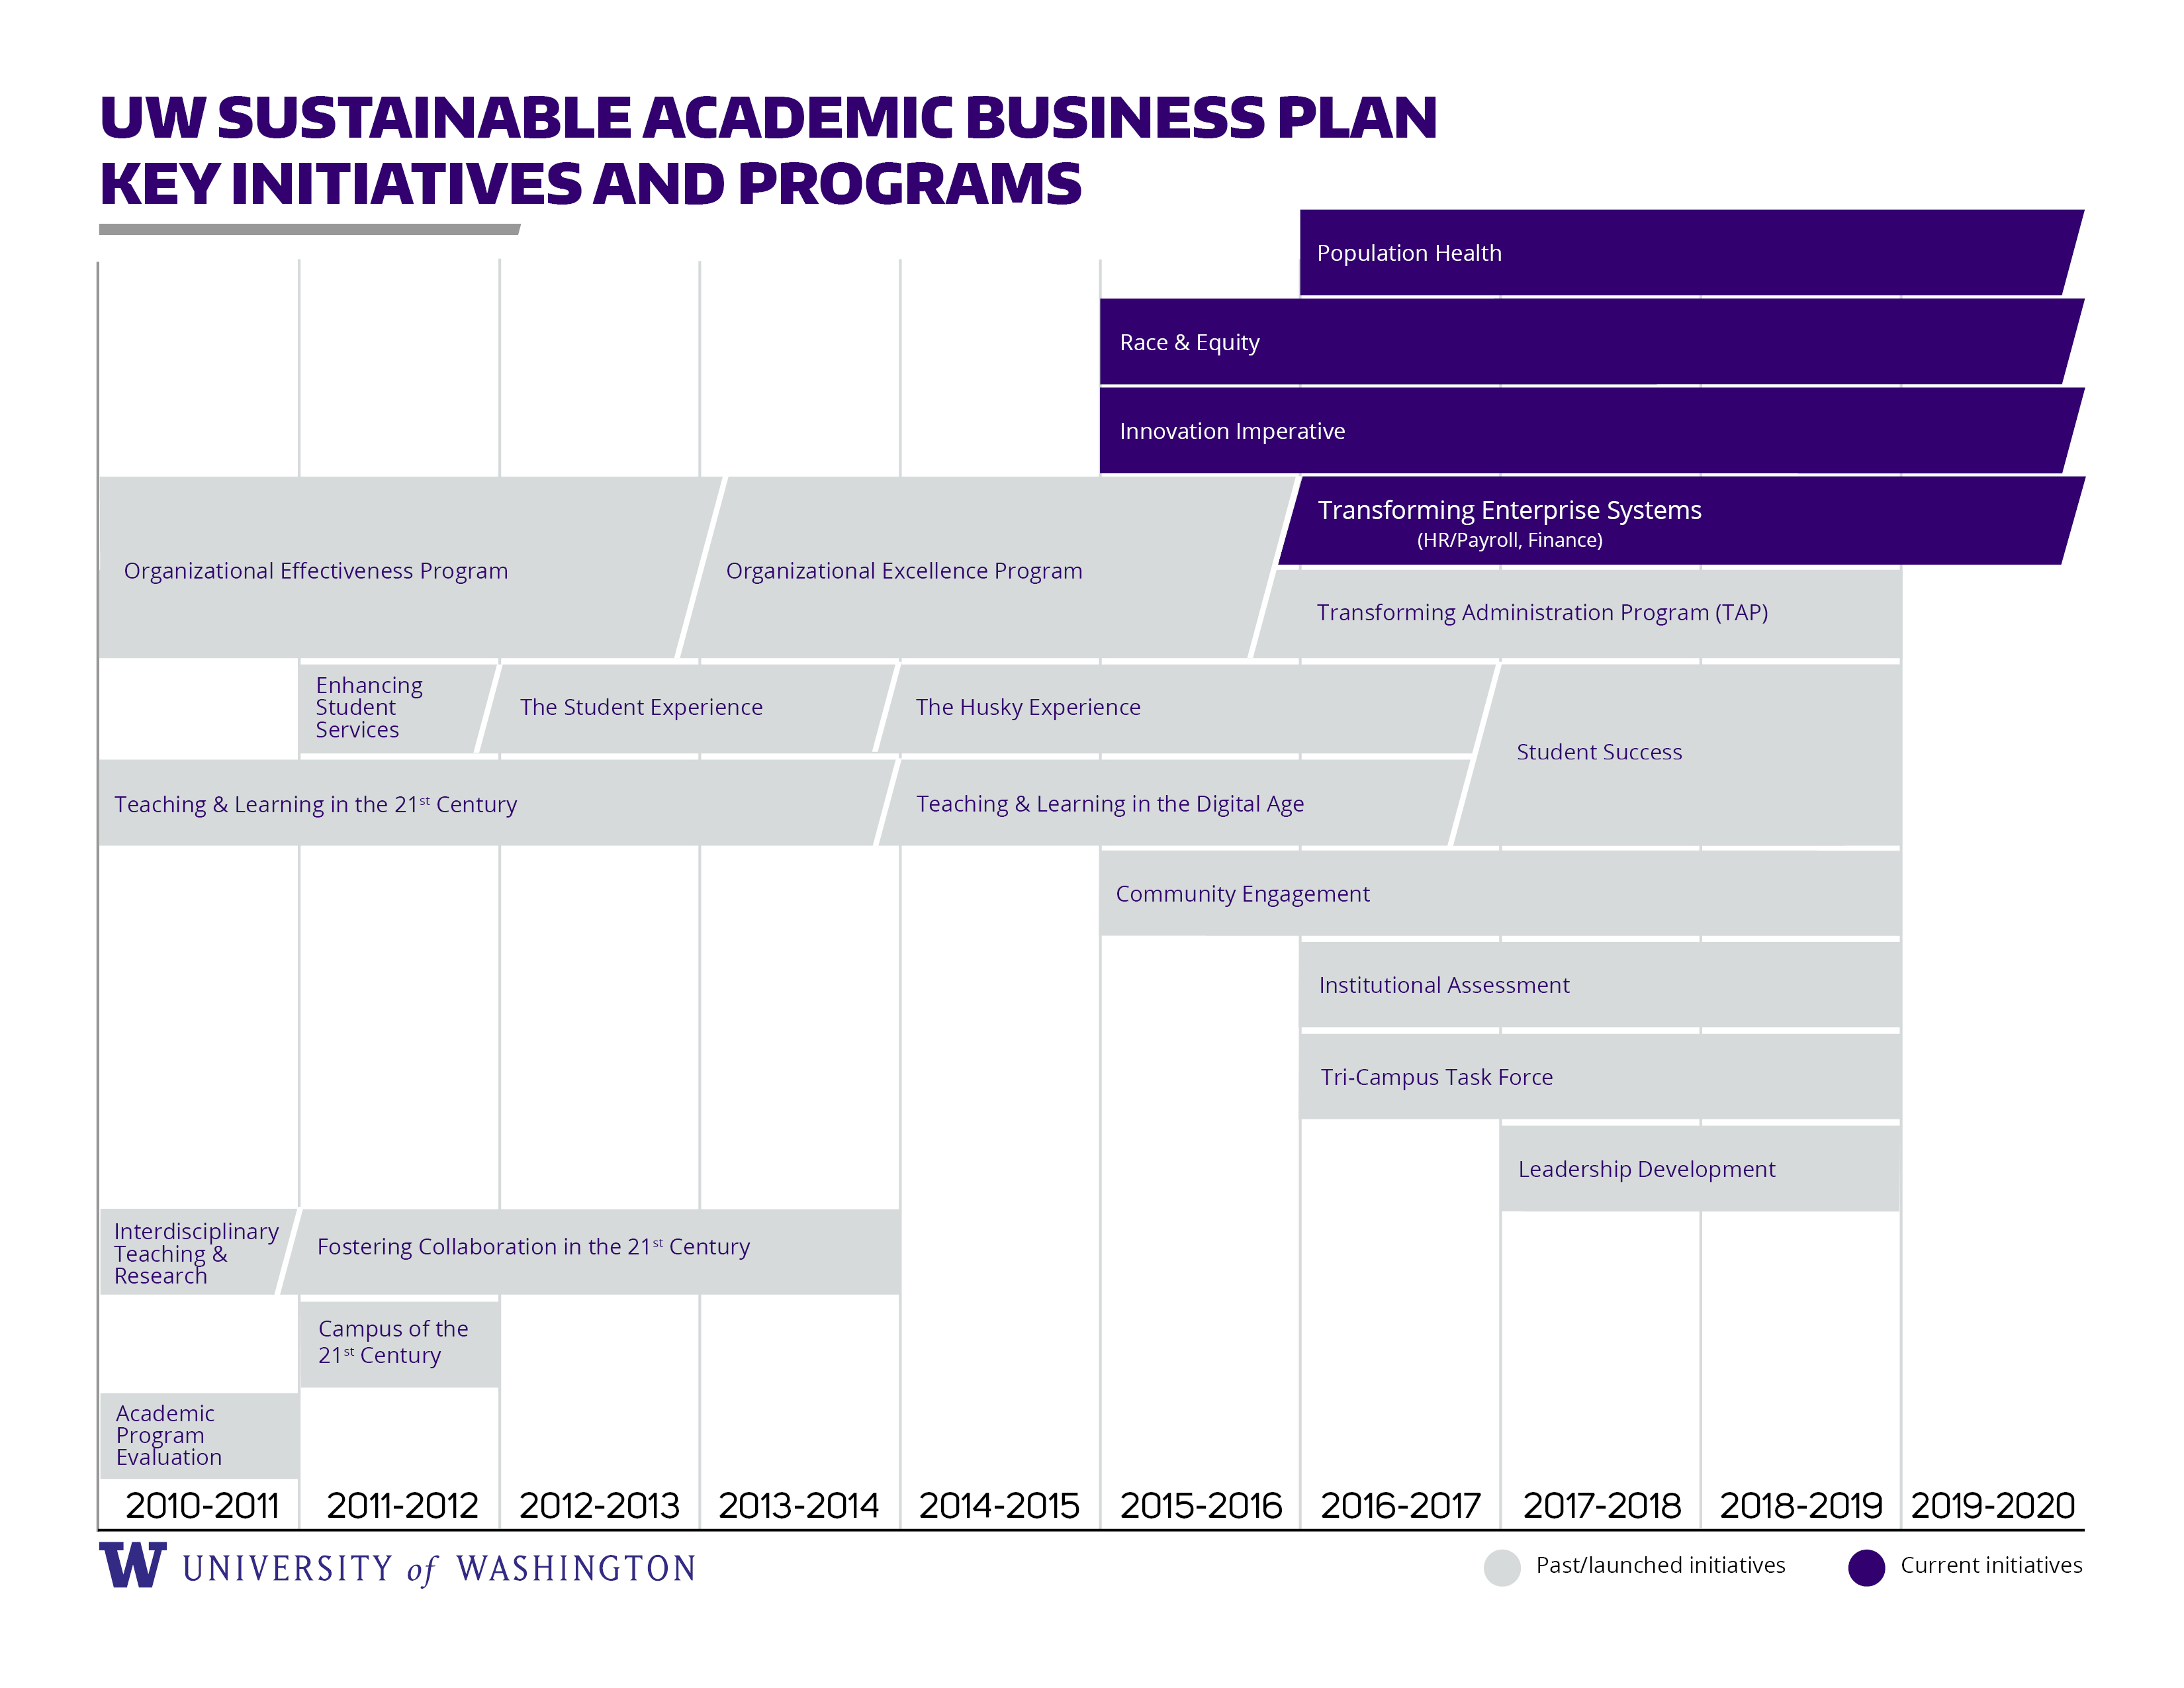 UW Sustainable Academic Business Plan key initiatives and programs timeline from 2010 to 2020